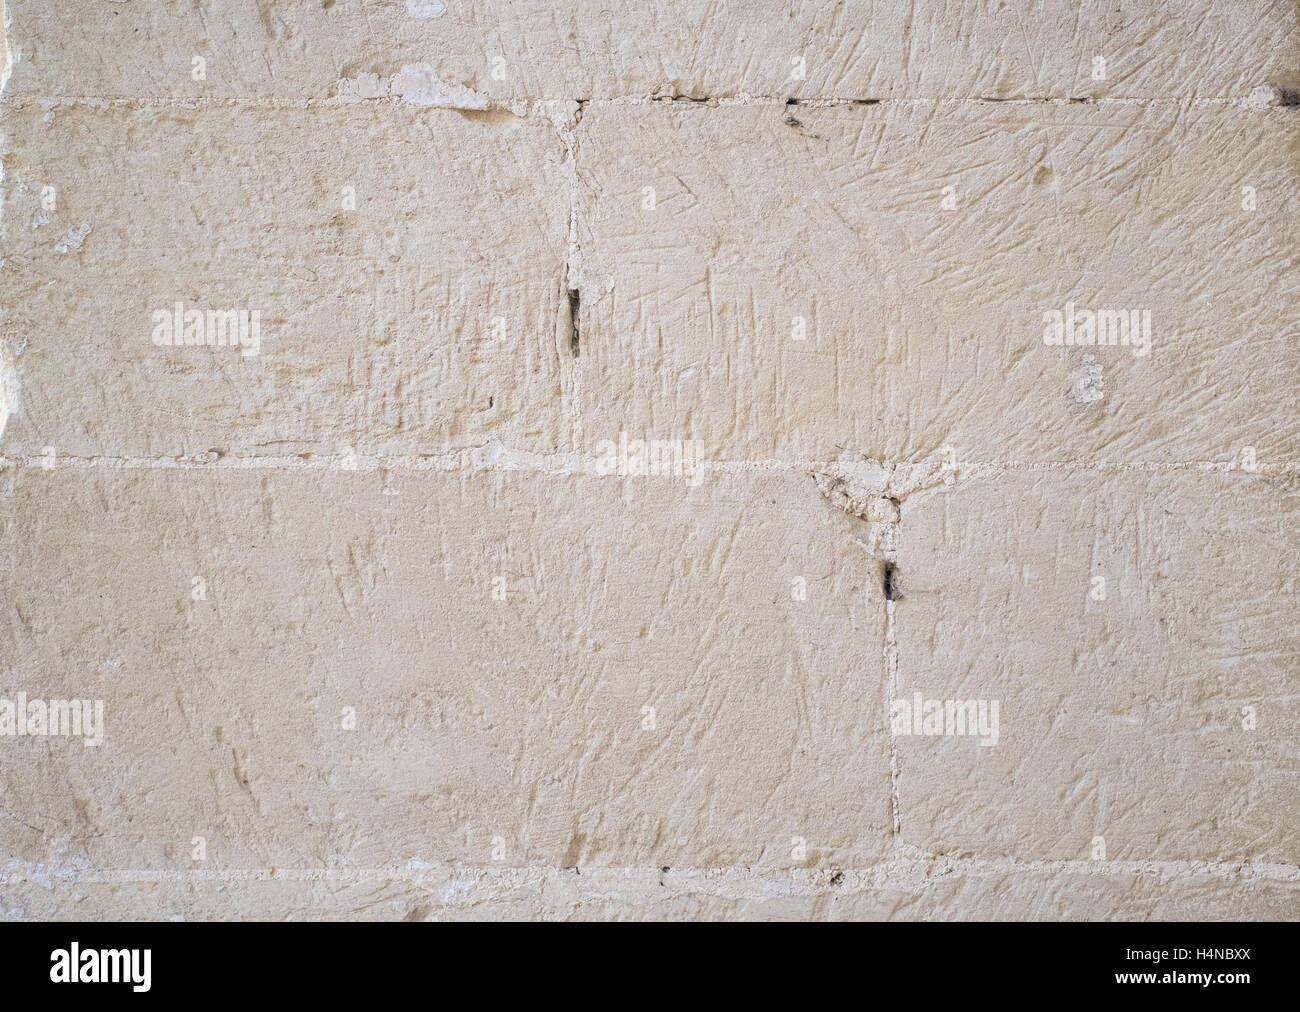 Traditional white stone wall. Detail of a wall made of white limestone bricks. Visible traces of chisel. - Stock Image